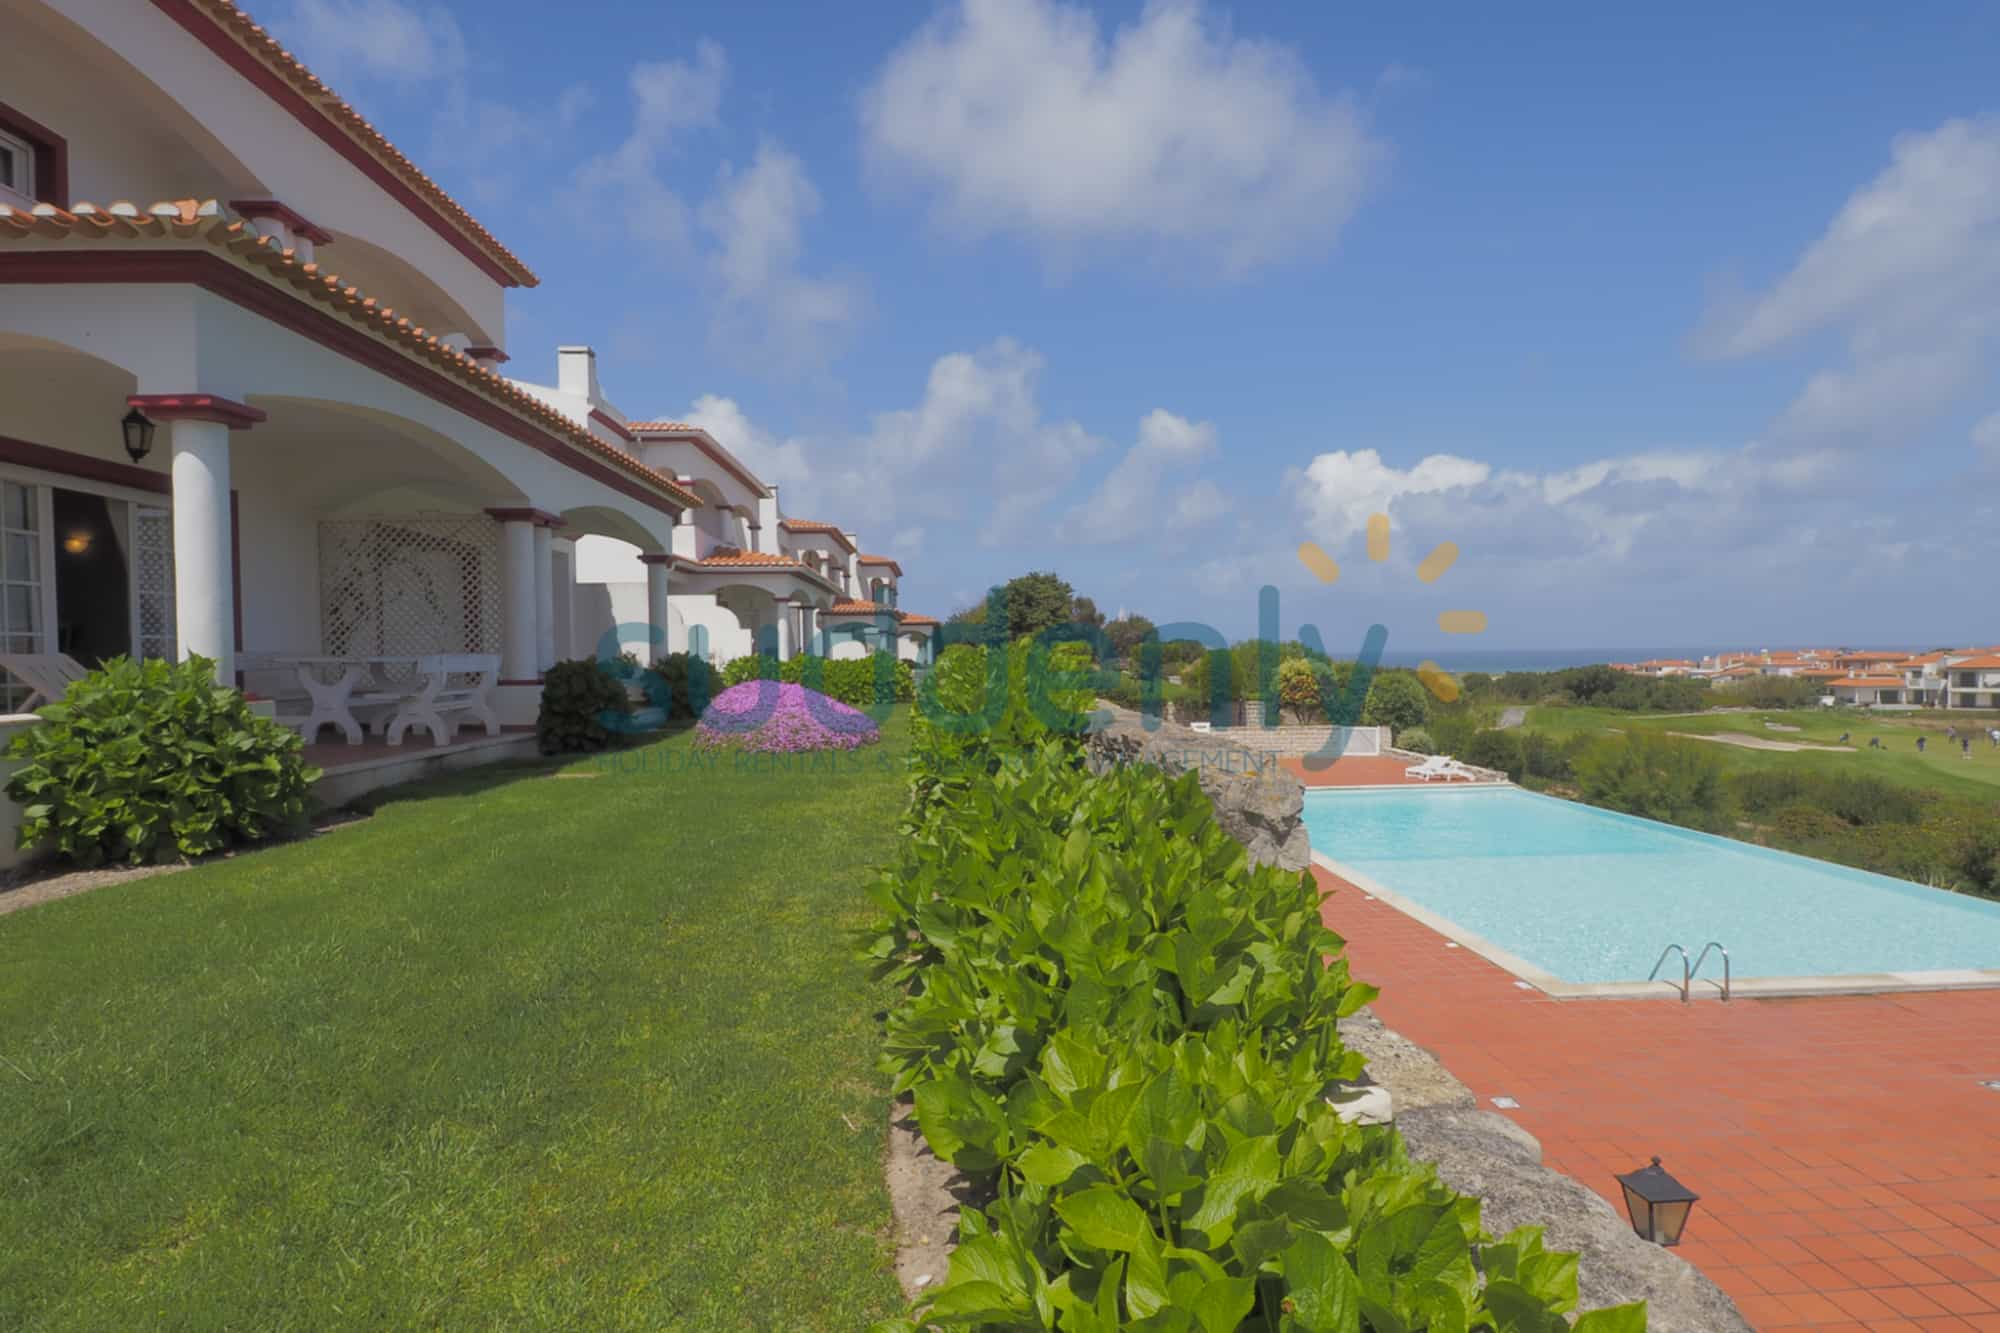 Holiday Rentals in Praia D'El Rey 230